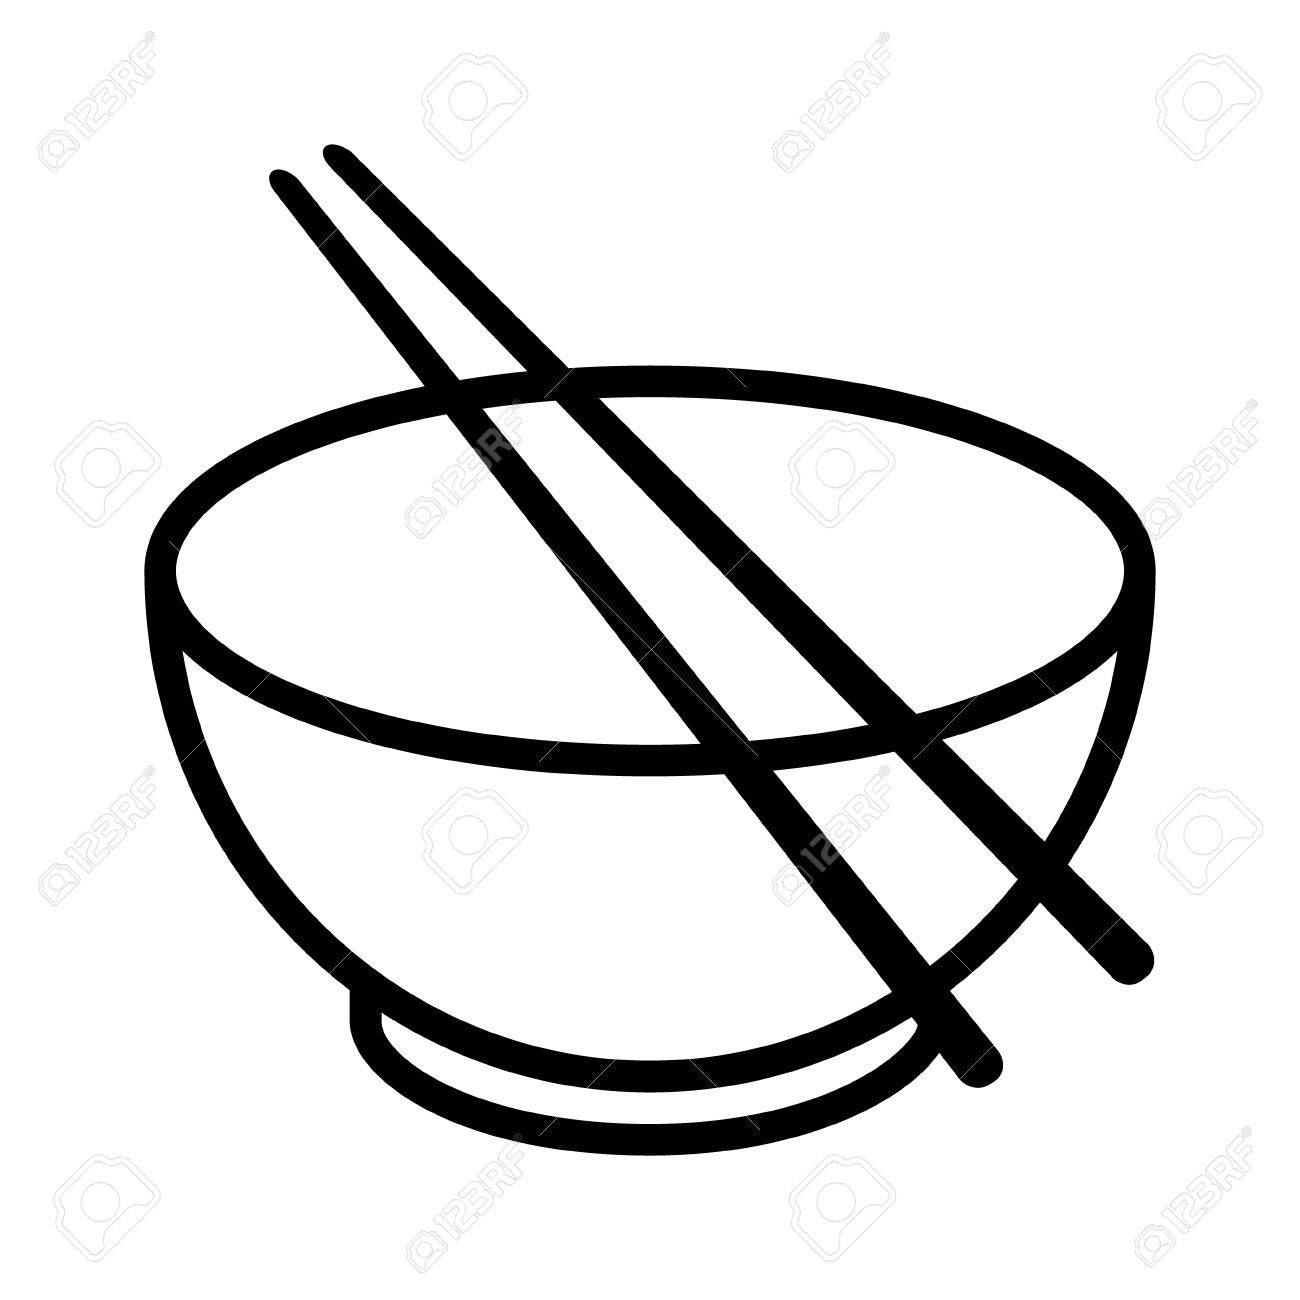 1300x1300 Bowl With Chopsticks Line Art Vector Icon For Food Apps